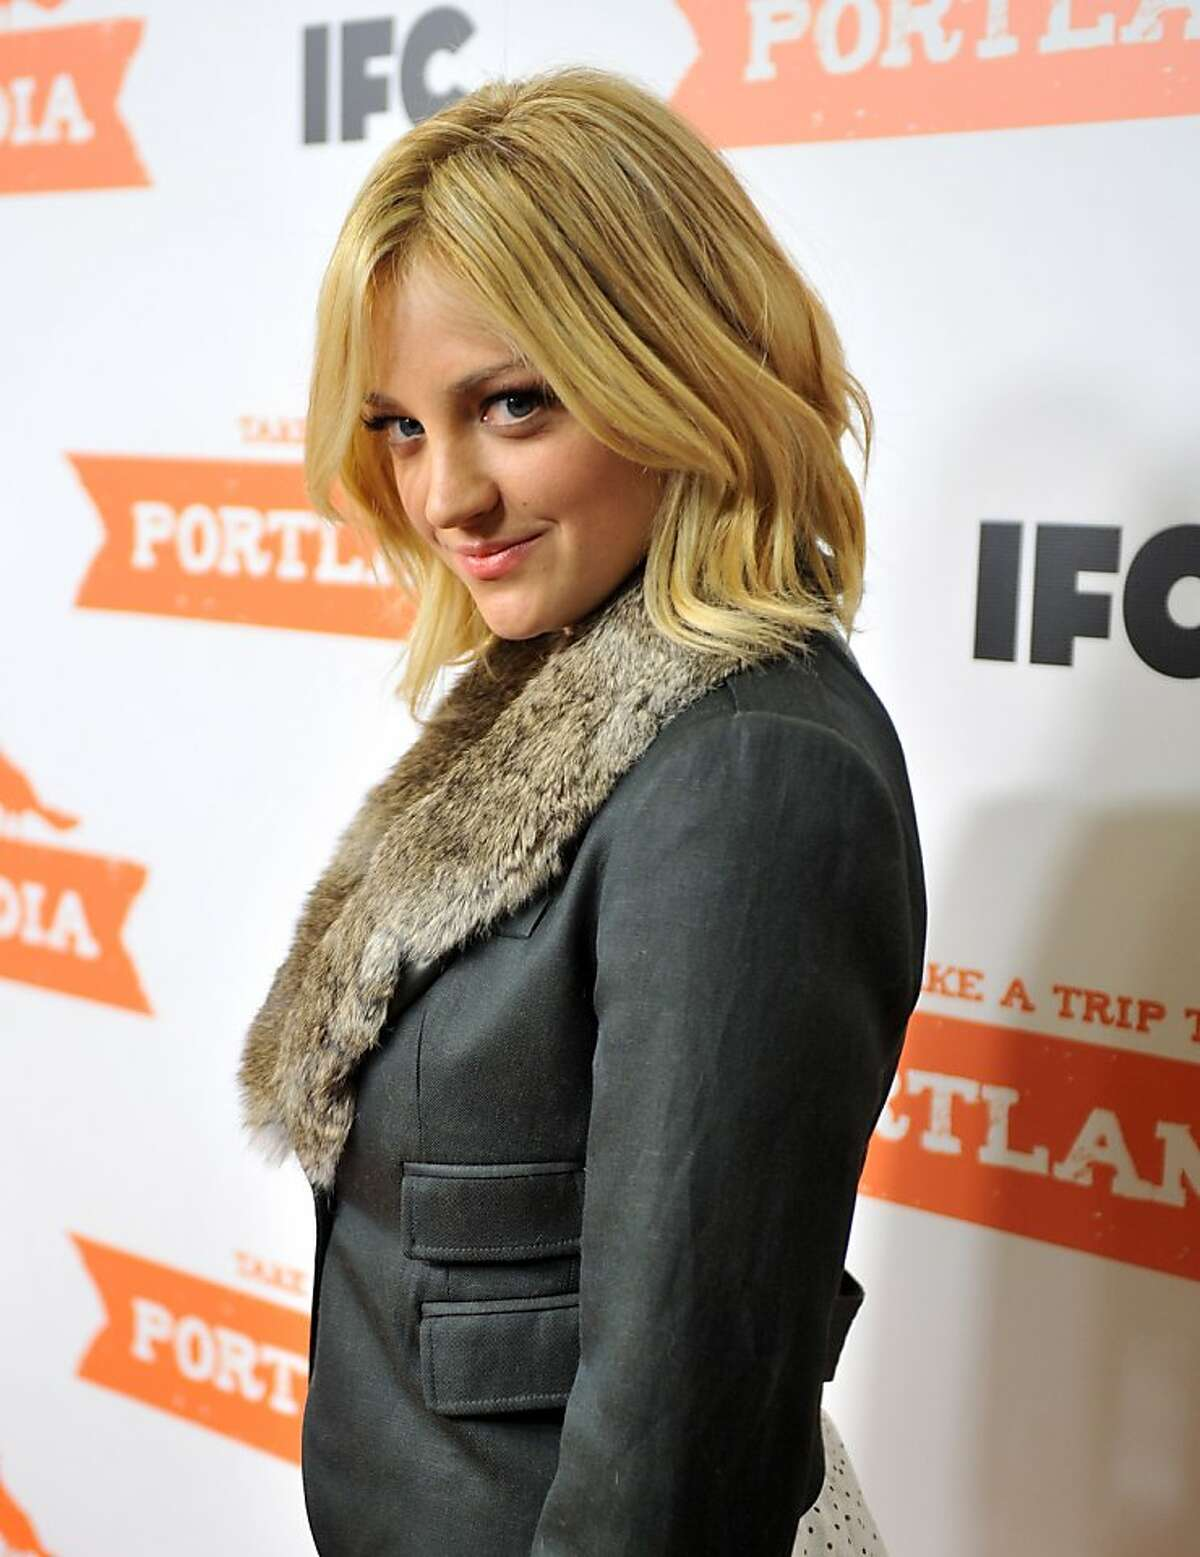 """Actress Abby Elliott atttends the """"Portlandia"""" season 2 premiere screening at the American Museum of Natural History on January 5, 2012 in New York City. (Photo by Stephen Lovekin/Getty Images)"""